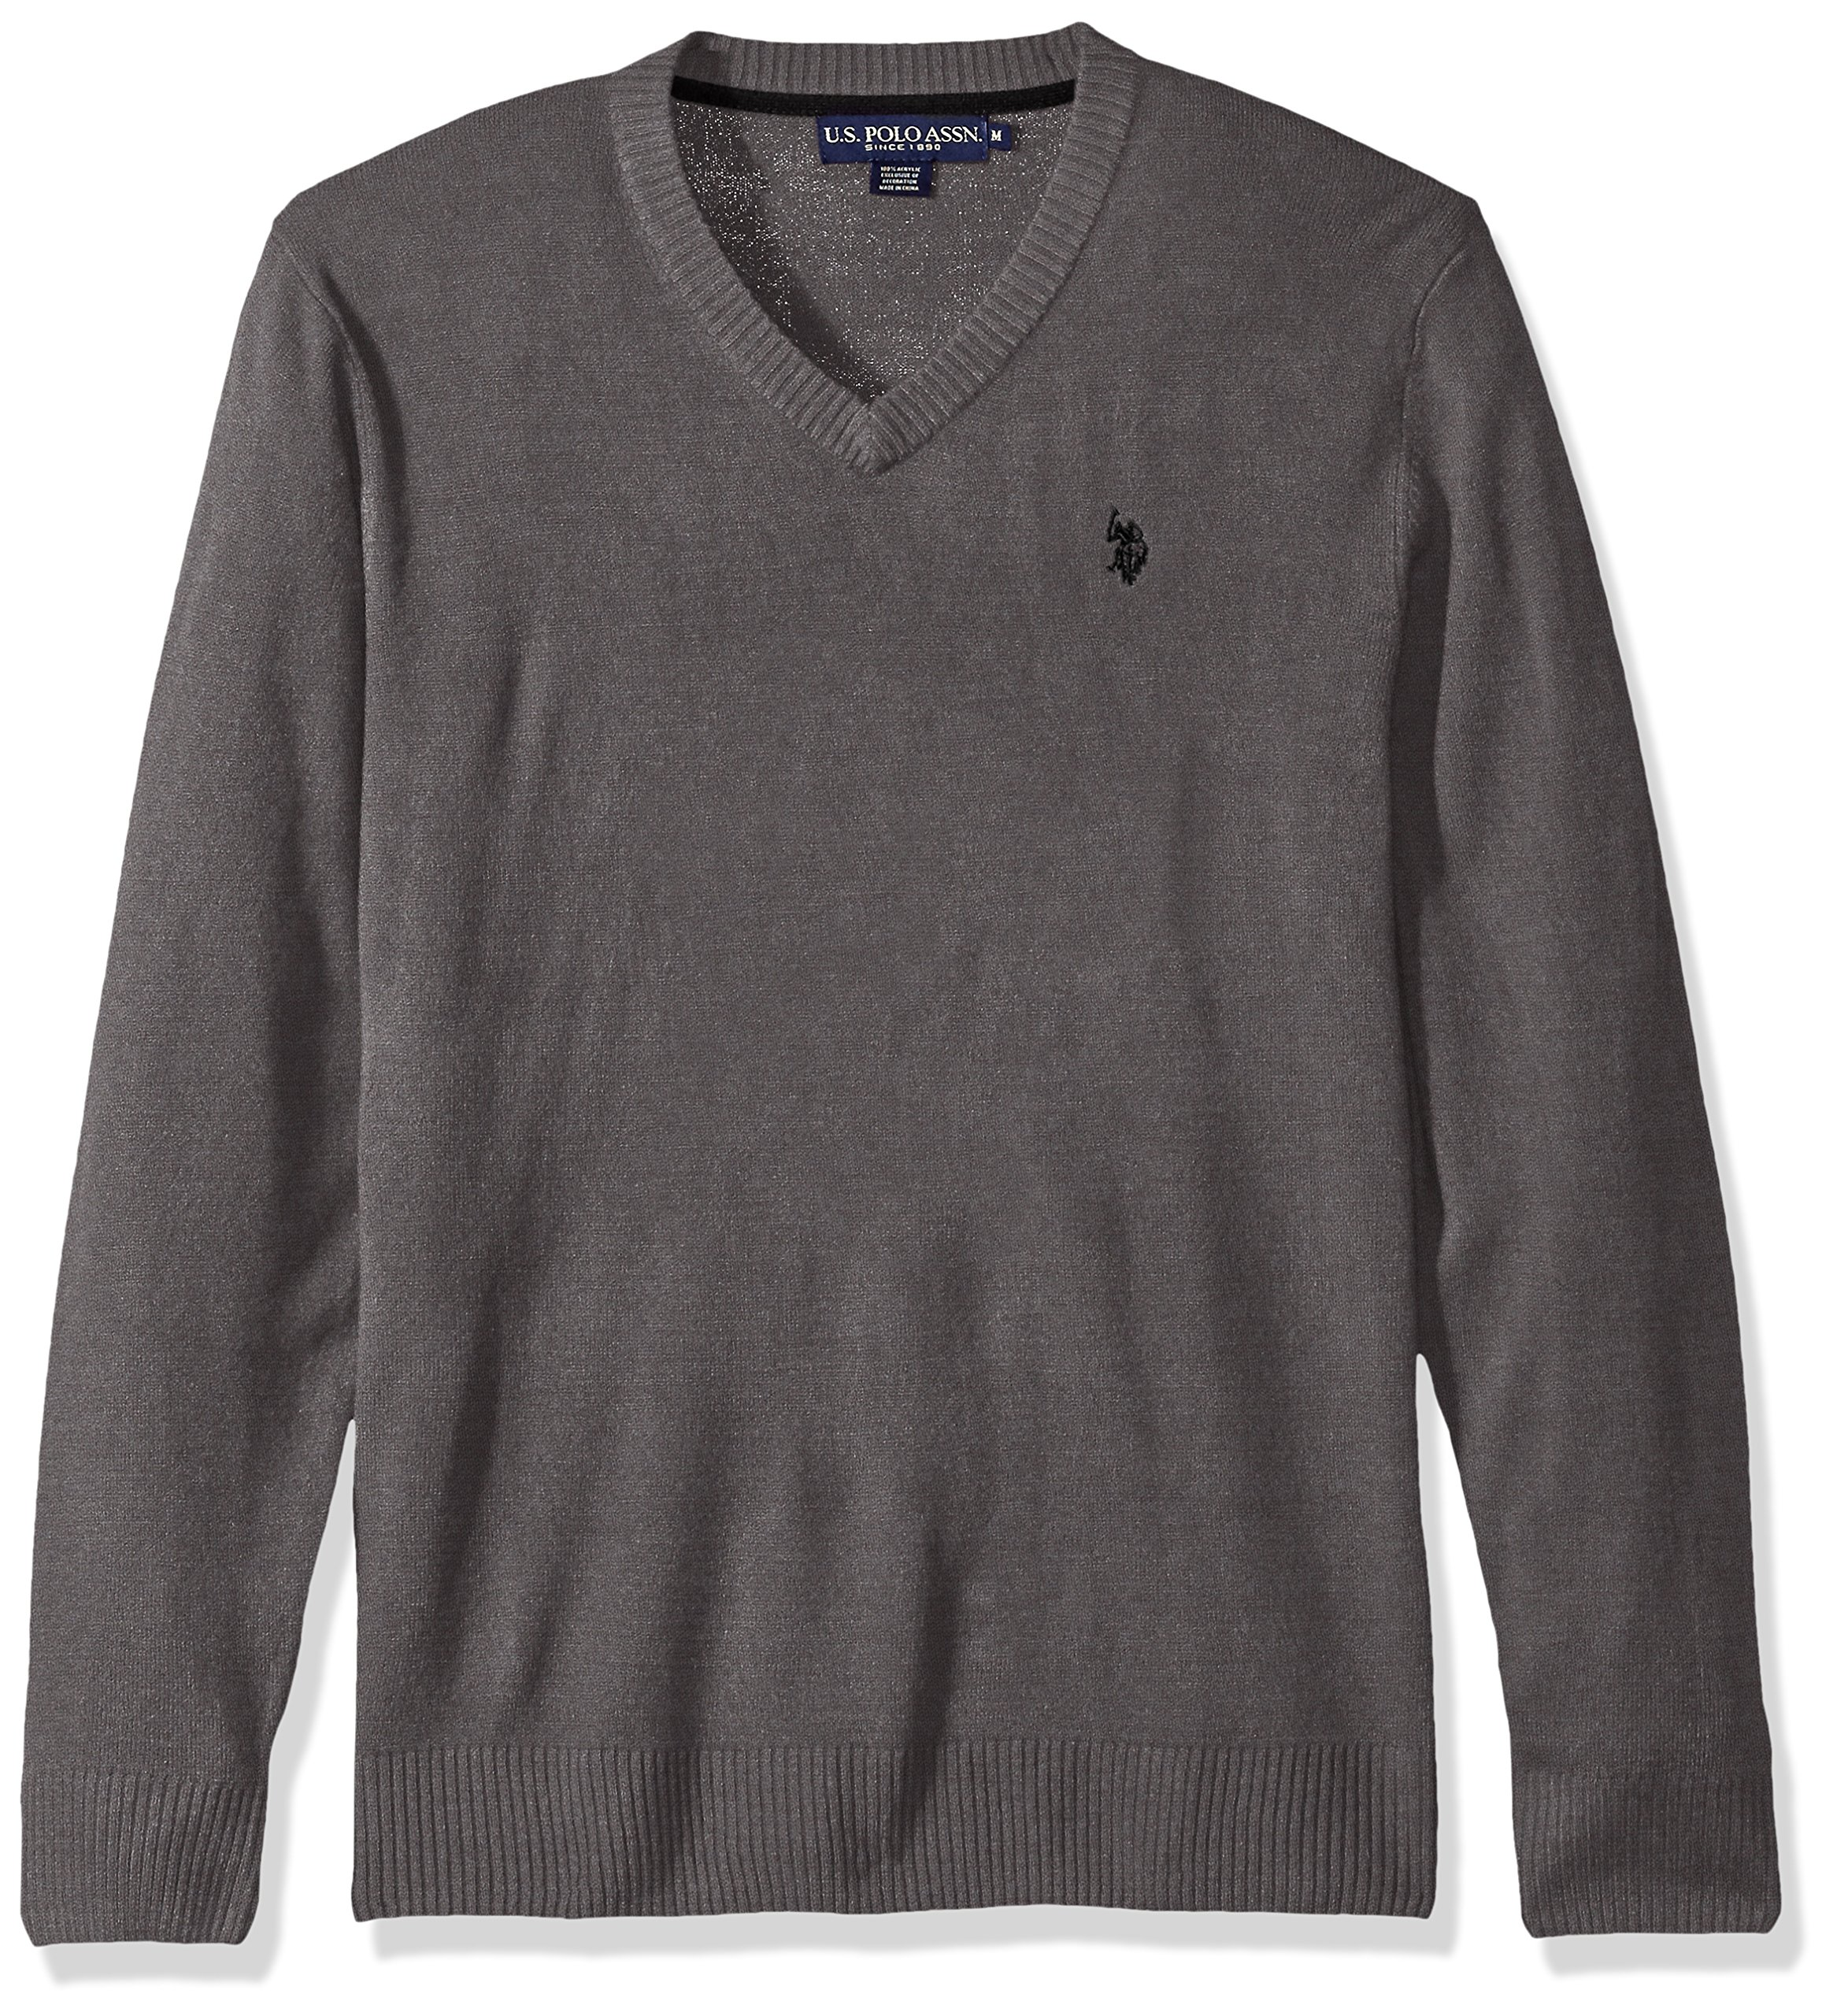 U.S. Polo Assn. Men's Solid V-Neck Sweater, Iron Heather, X-Large